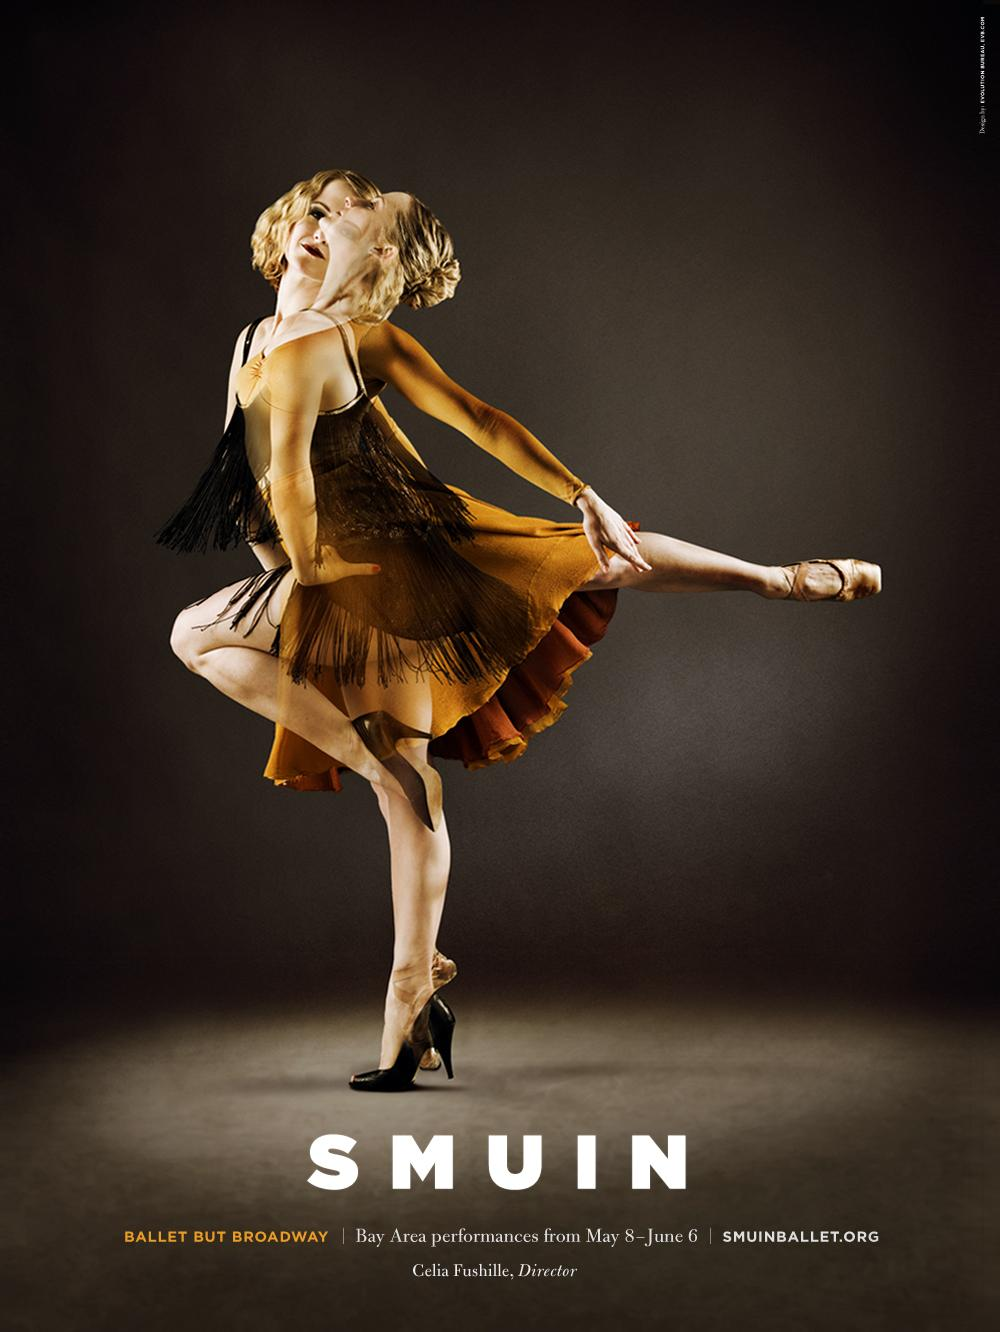 Smuin Ballet Company Outdoor Ad -  Ballet But Broadway